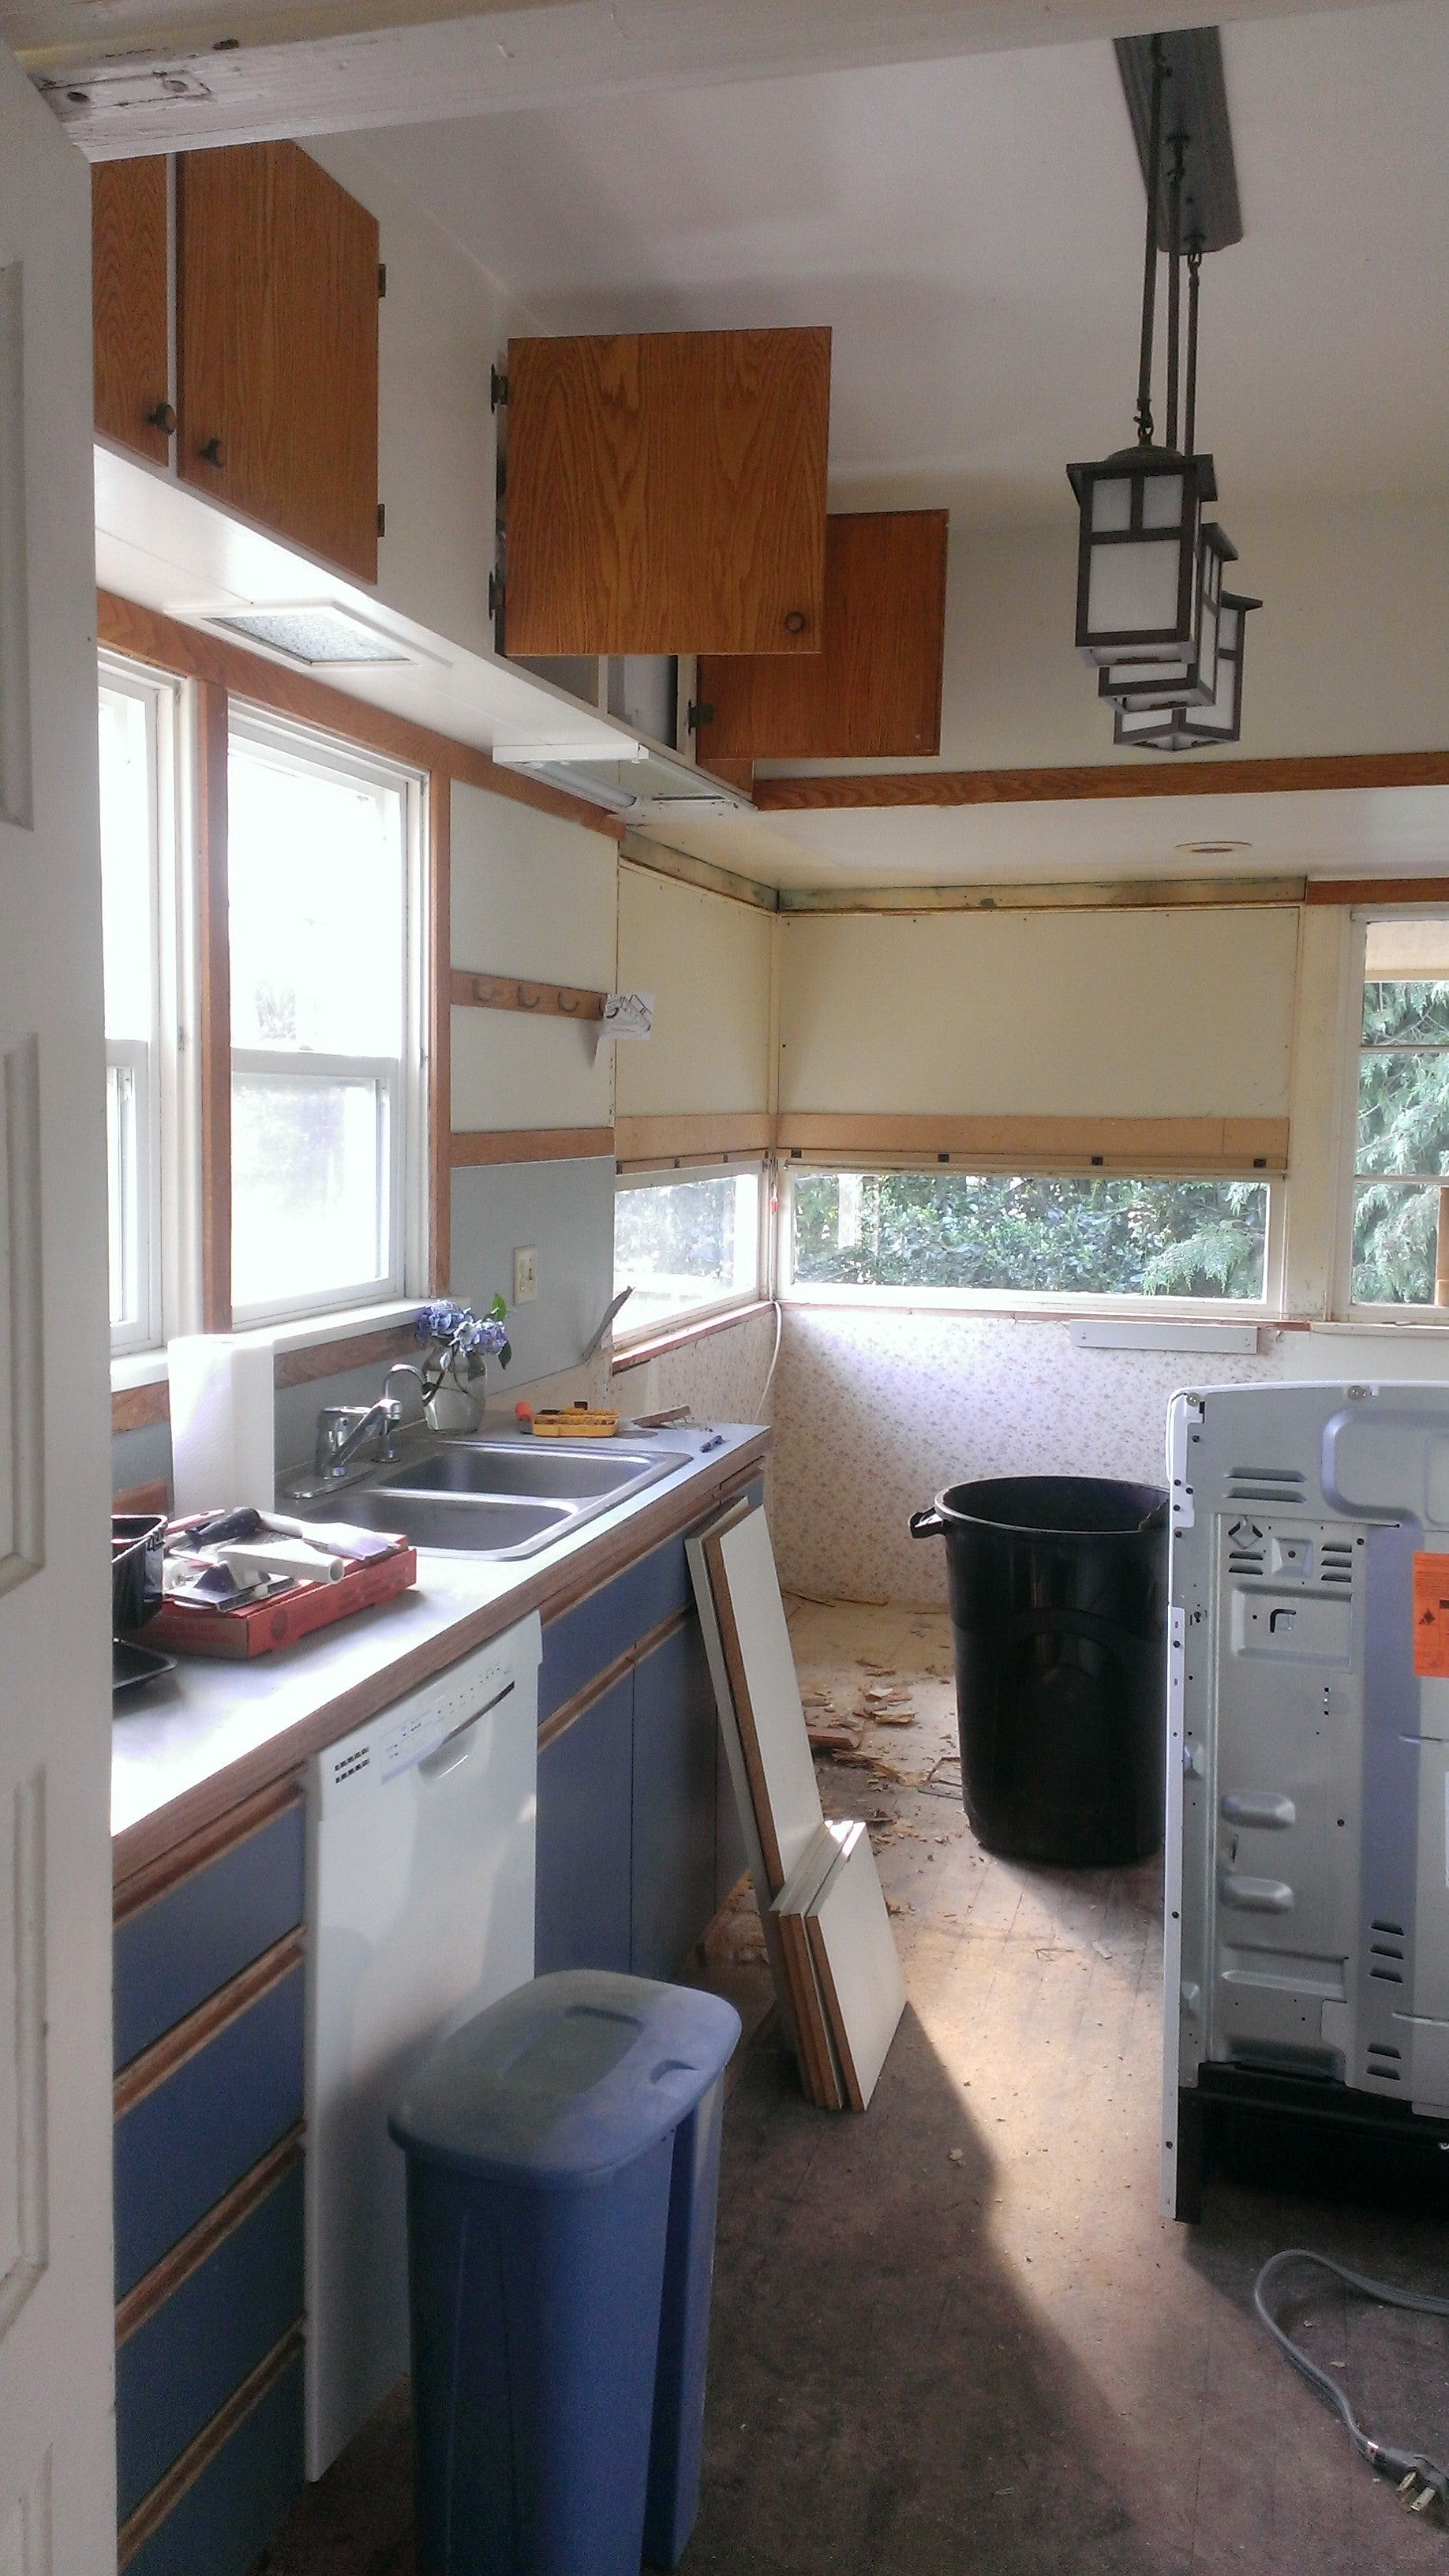 The kitchen when we moved in had two soffits (lowered areas of ceiling), old cabinets and old wood windows that had been covered up to place upper cabinets over the top of them